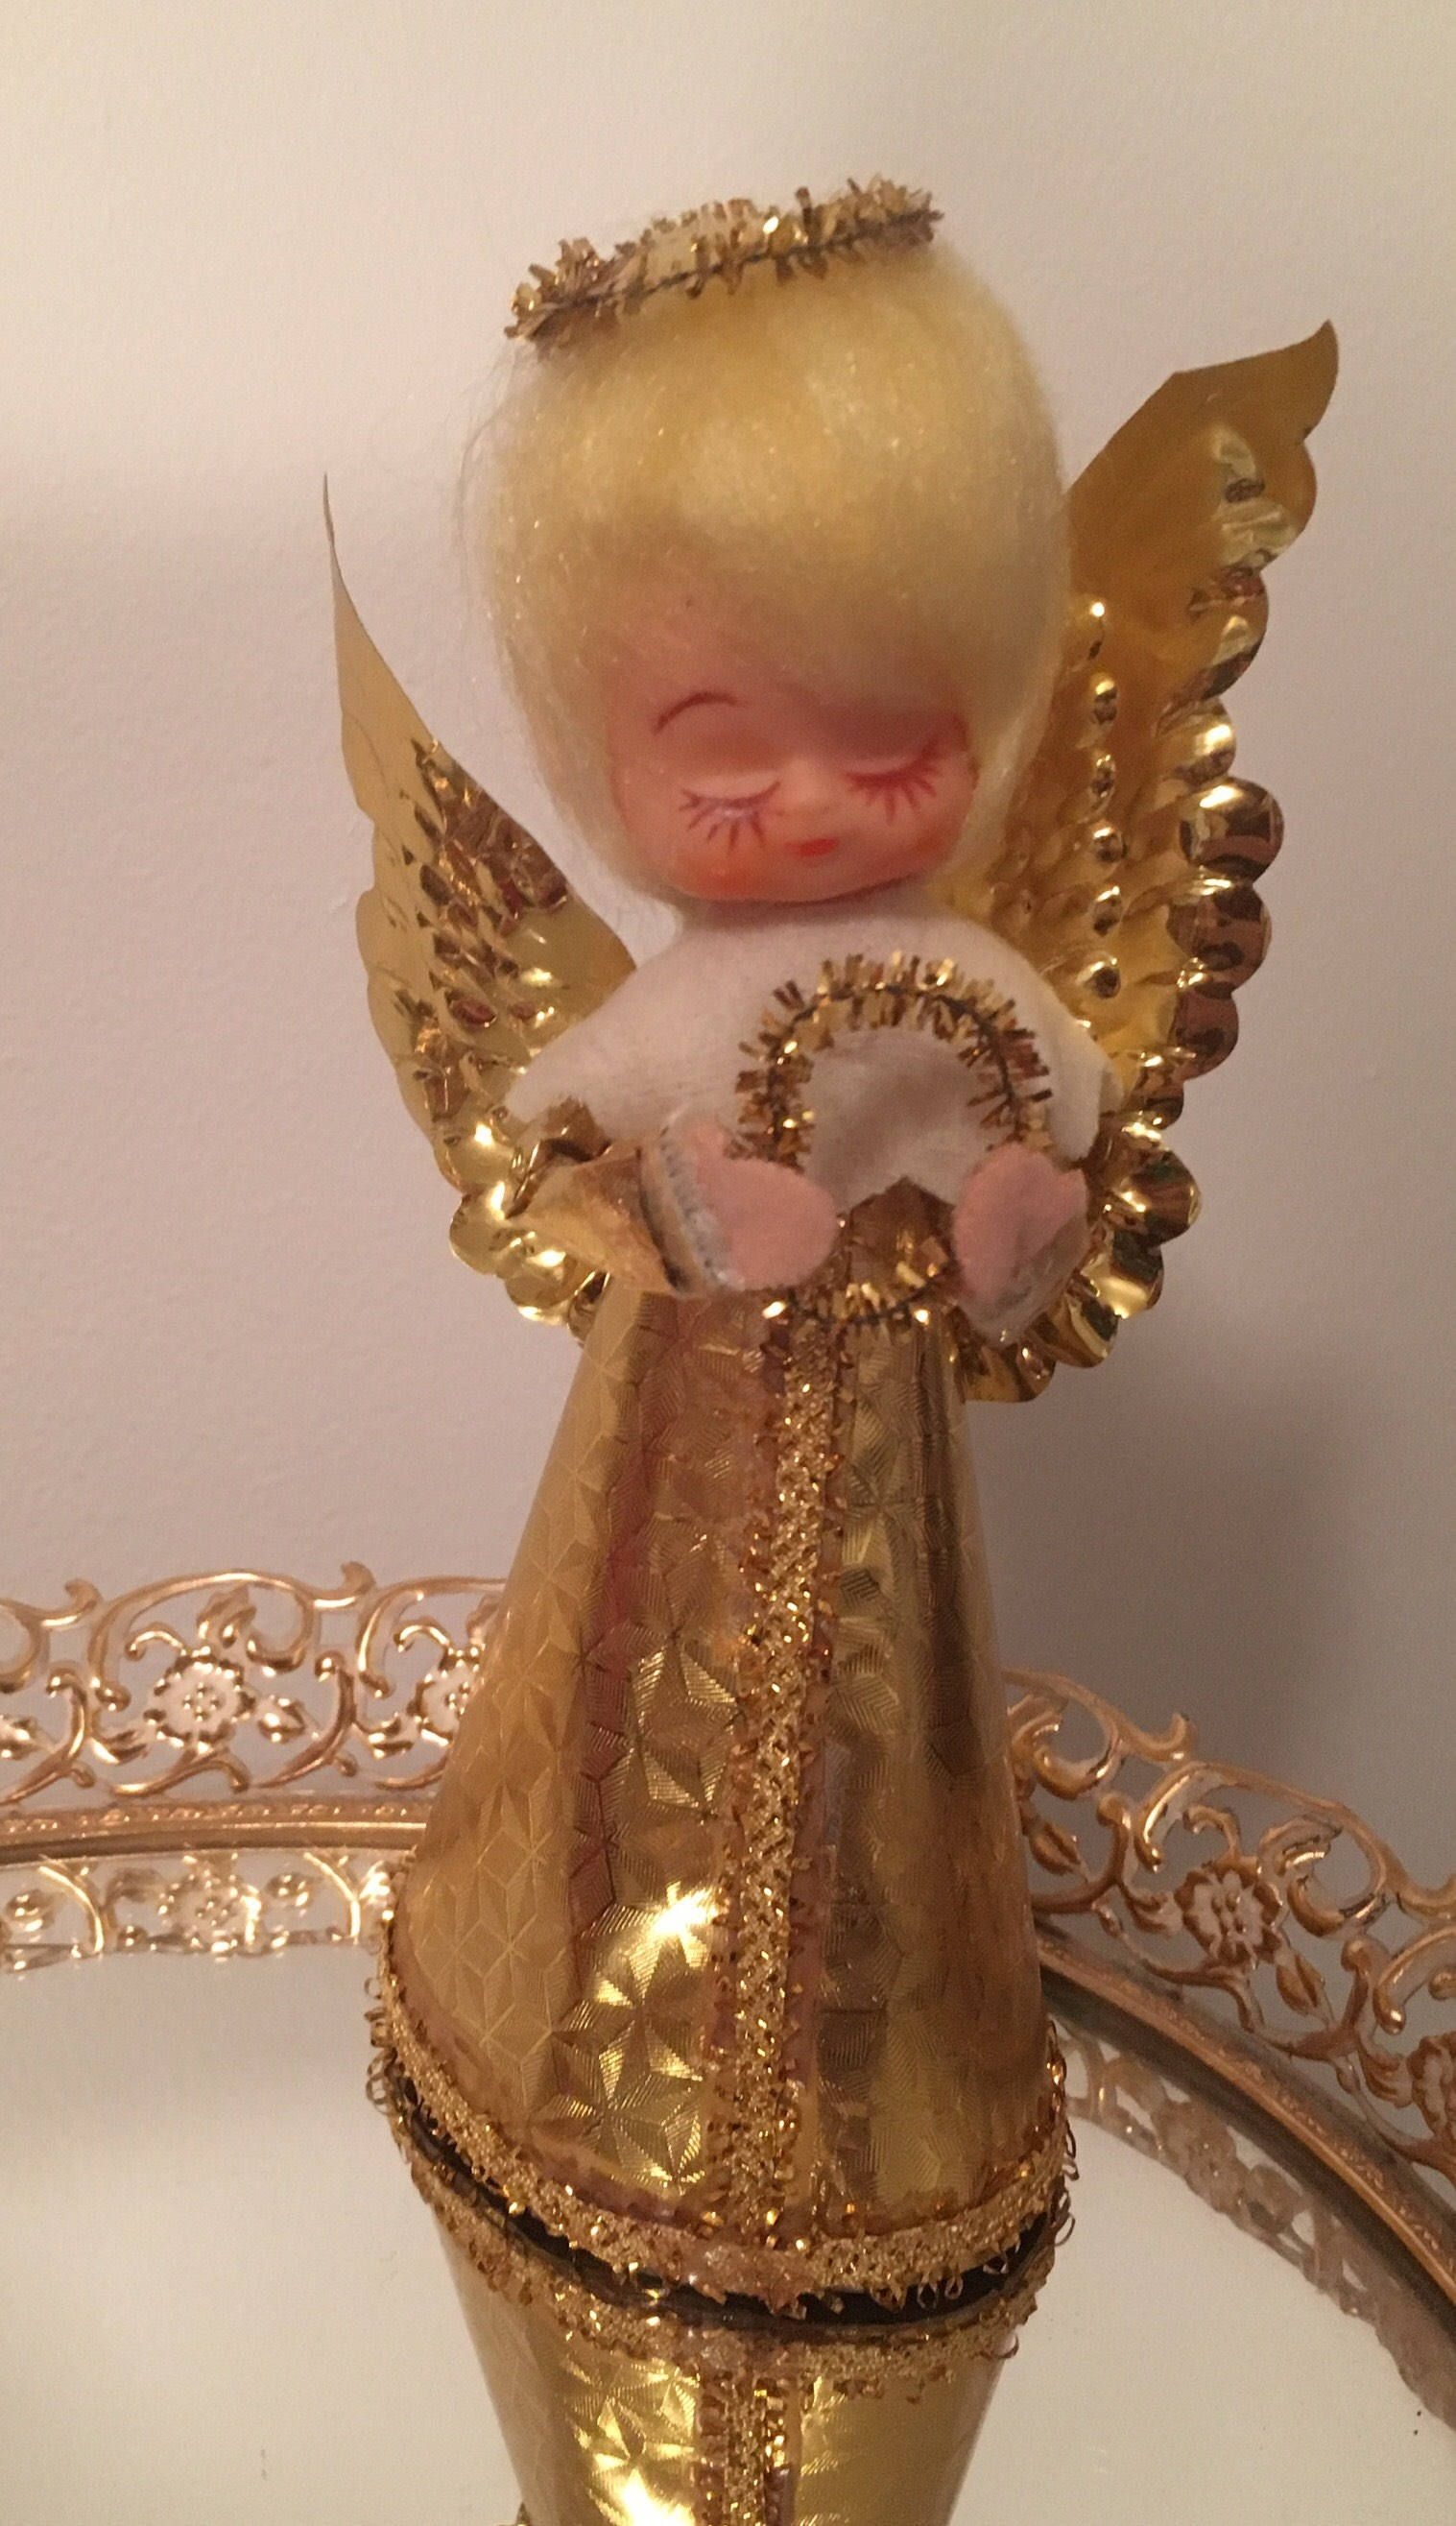 Vintage Christmas Angel Tree Topper Gold Wings Gold Halo Made In Japan By Vintagelove50 On Etsy Christmas Angels Vintage Christmas Angel Tree Topper